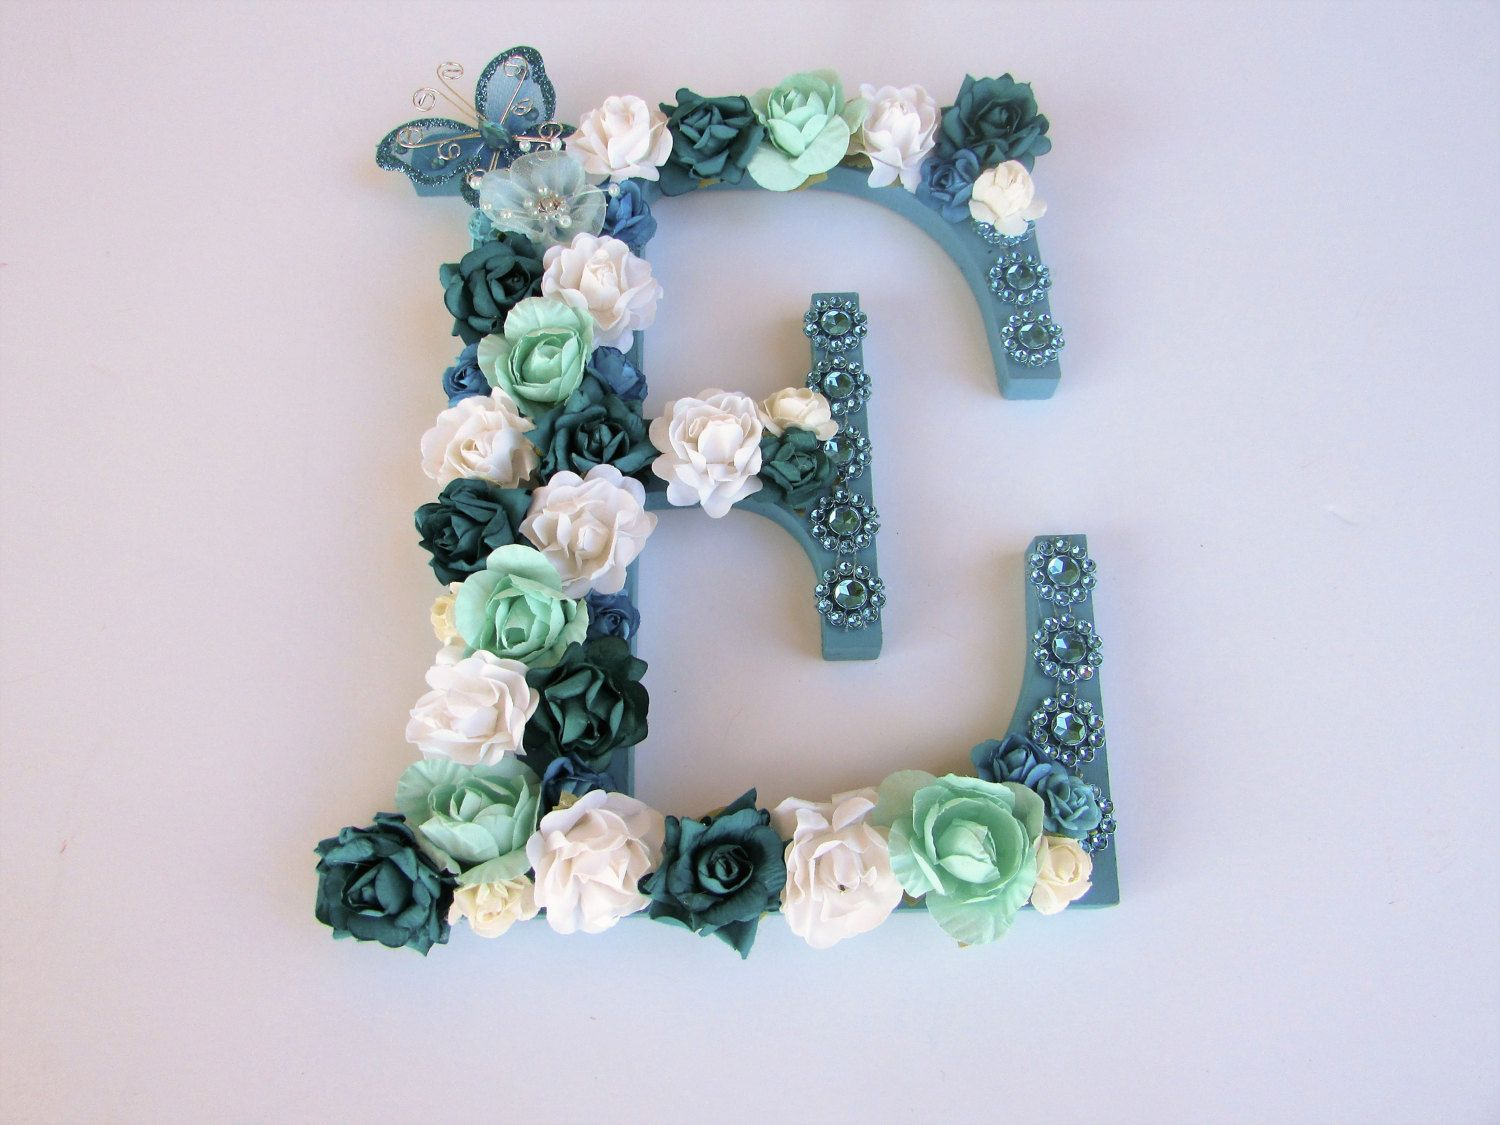 78c337f50dab Custom name letter - Name letter E - Flower name letter - Nursery name  letter - Birthday gift - Wedding decor - Personalized letters by  PreciousGiftsbyDiane ...